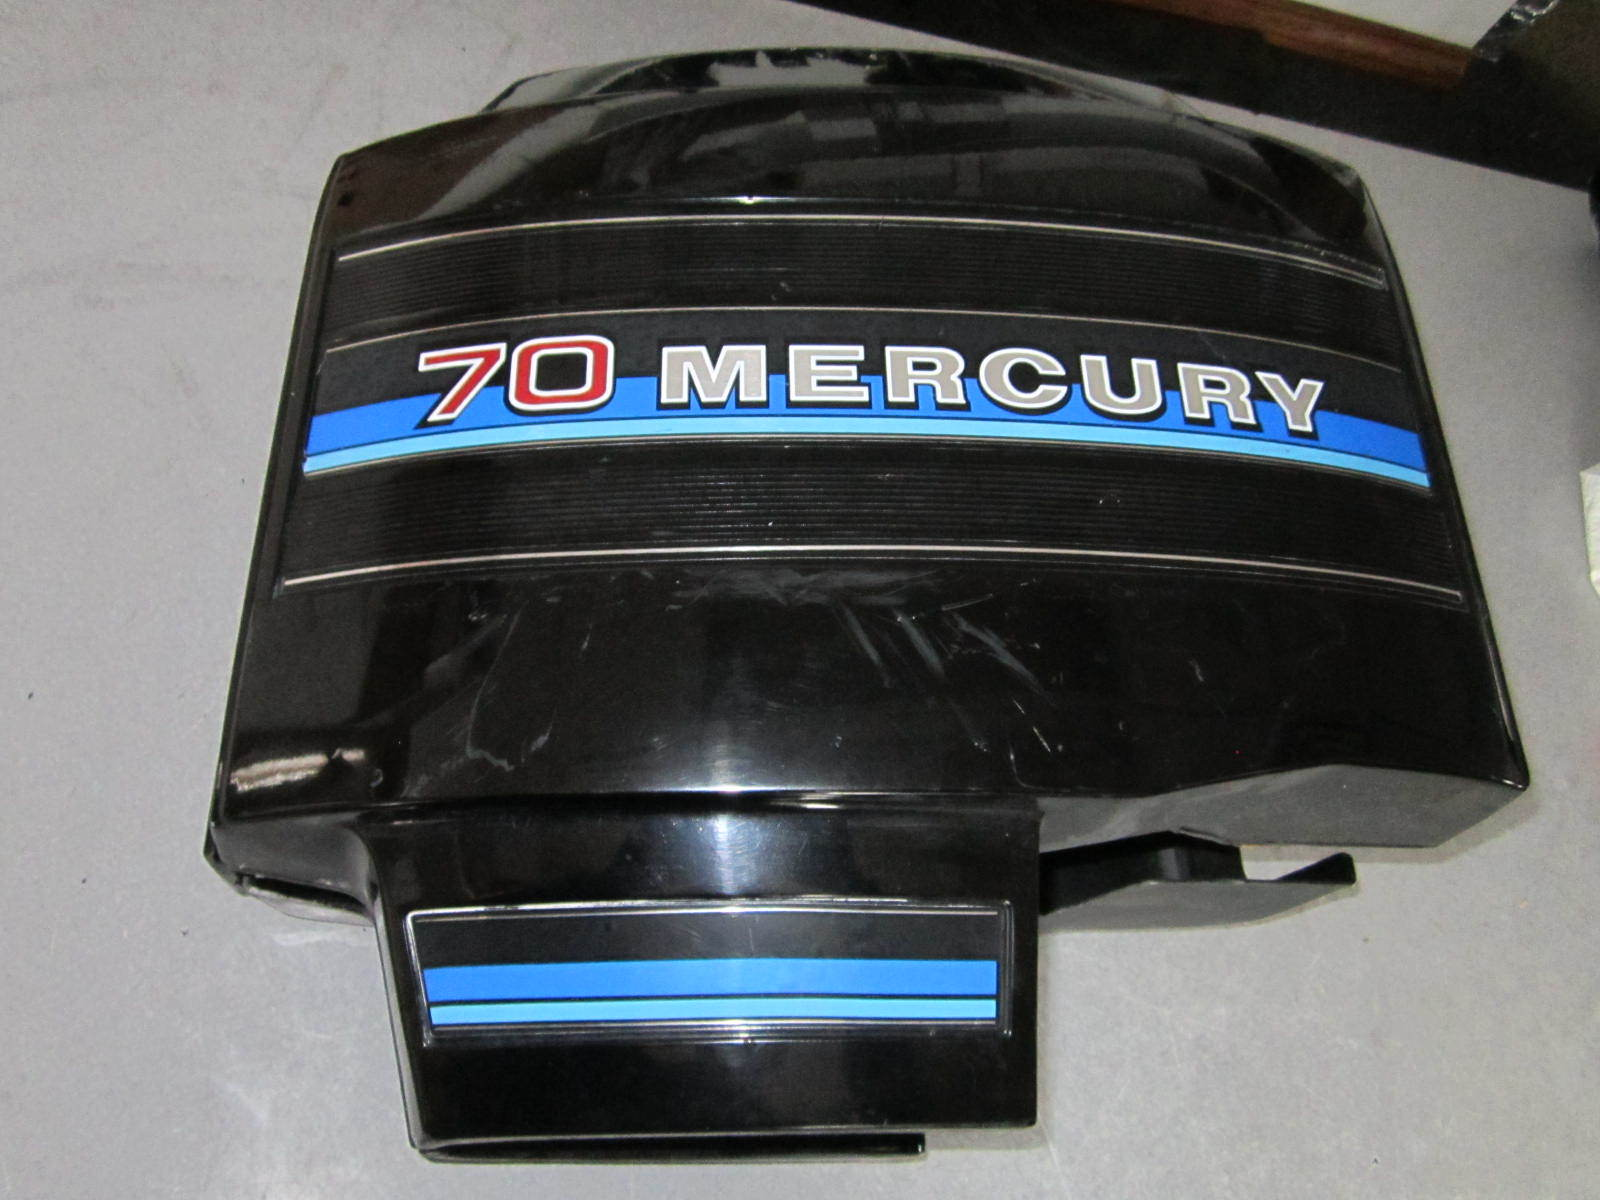 Mercury 70 hp outboard clam shell engine cowling cover for Mercury outboard motor cowling